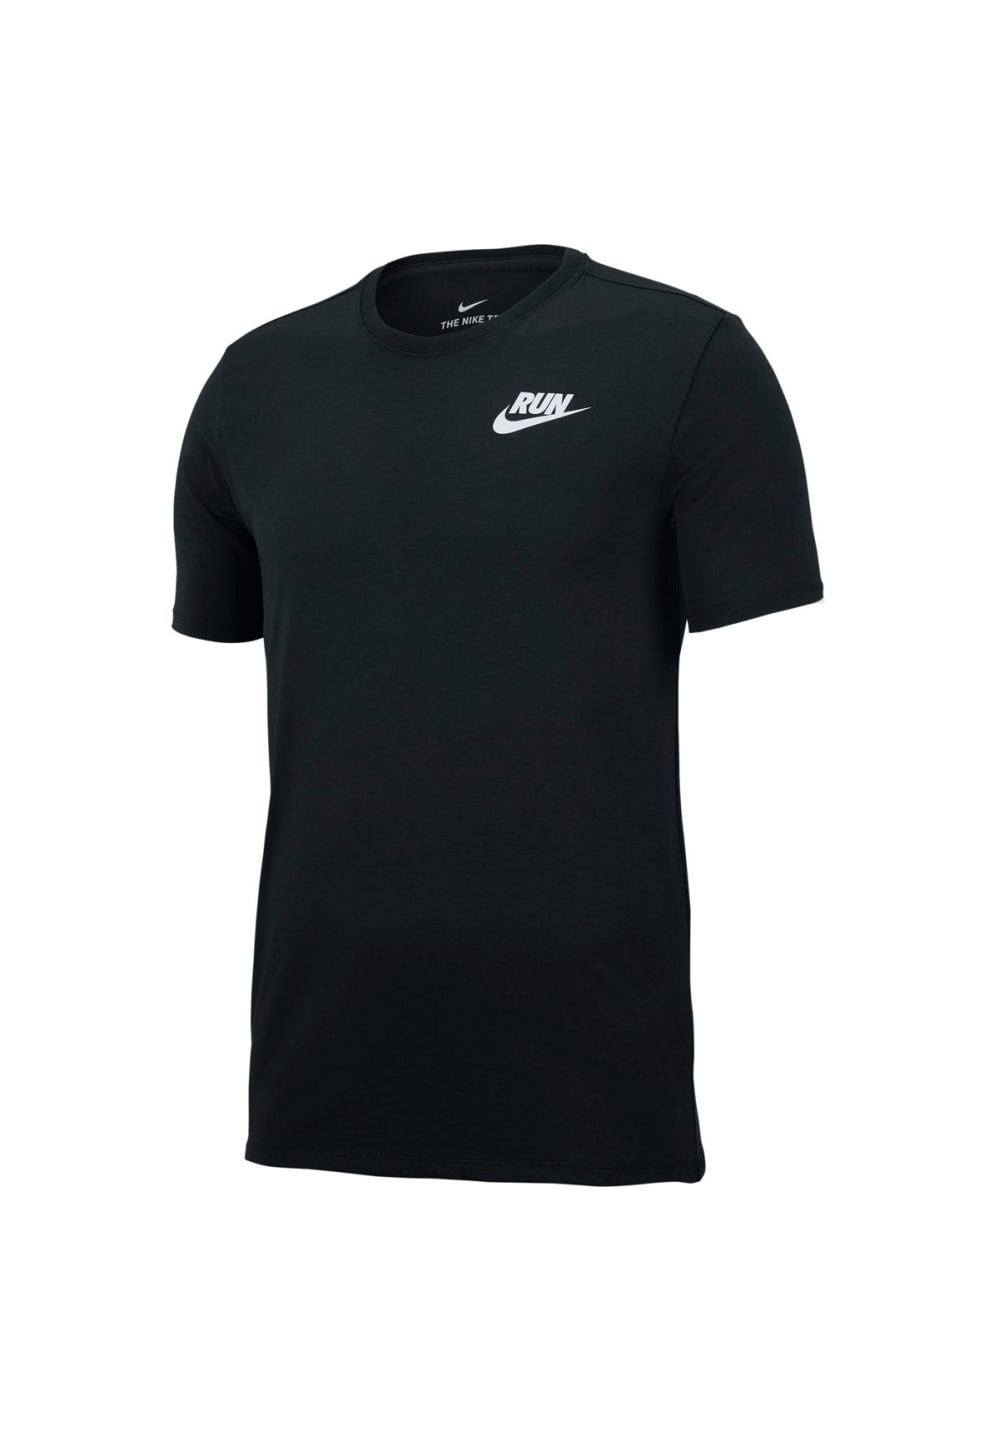 f770692b4d ... Nike Dry Running T-Shirt - Running tops for Men - Black. Back to  Overview. 1  2. Previous